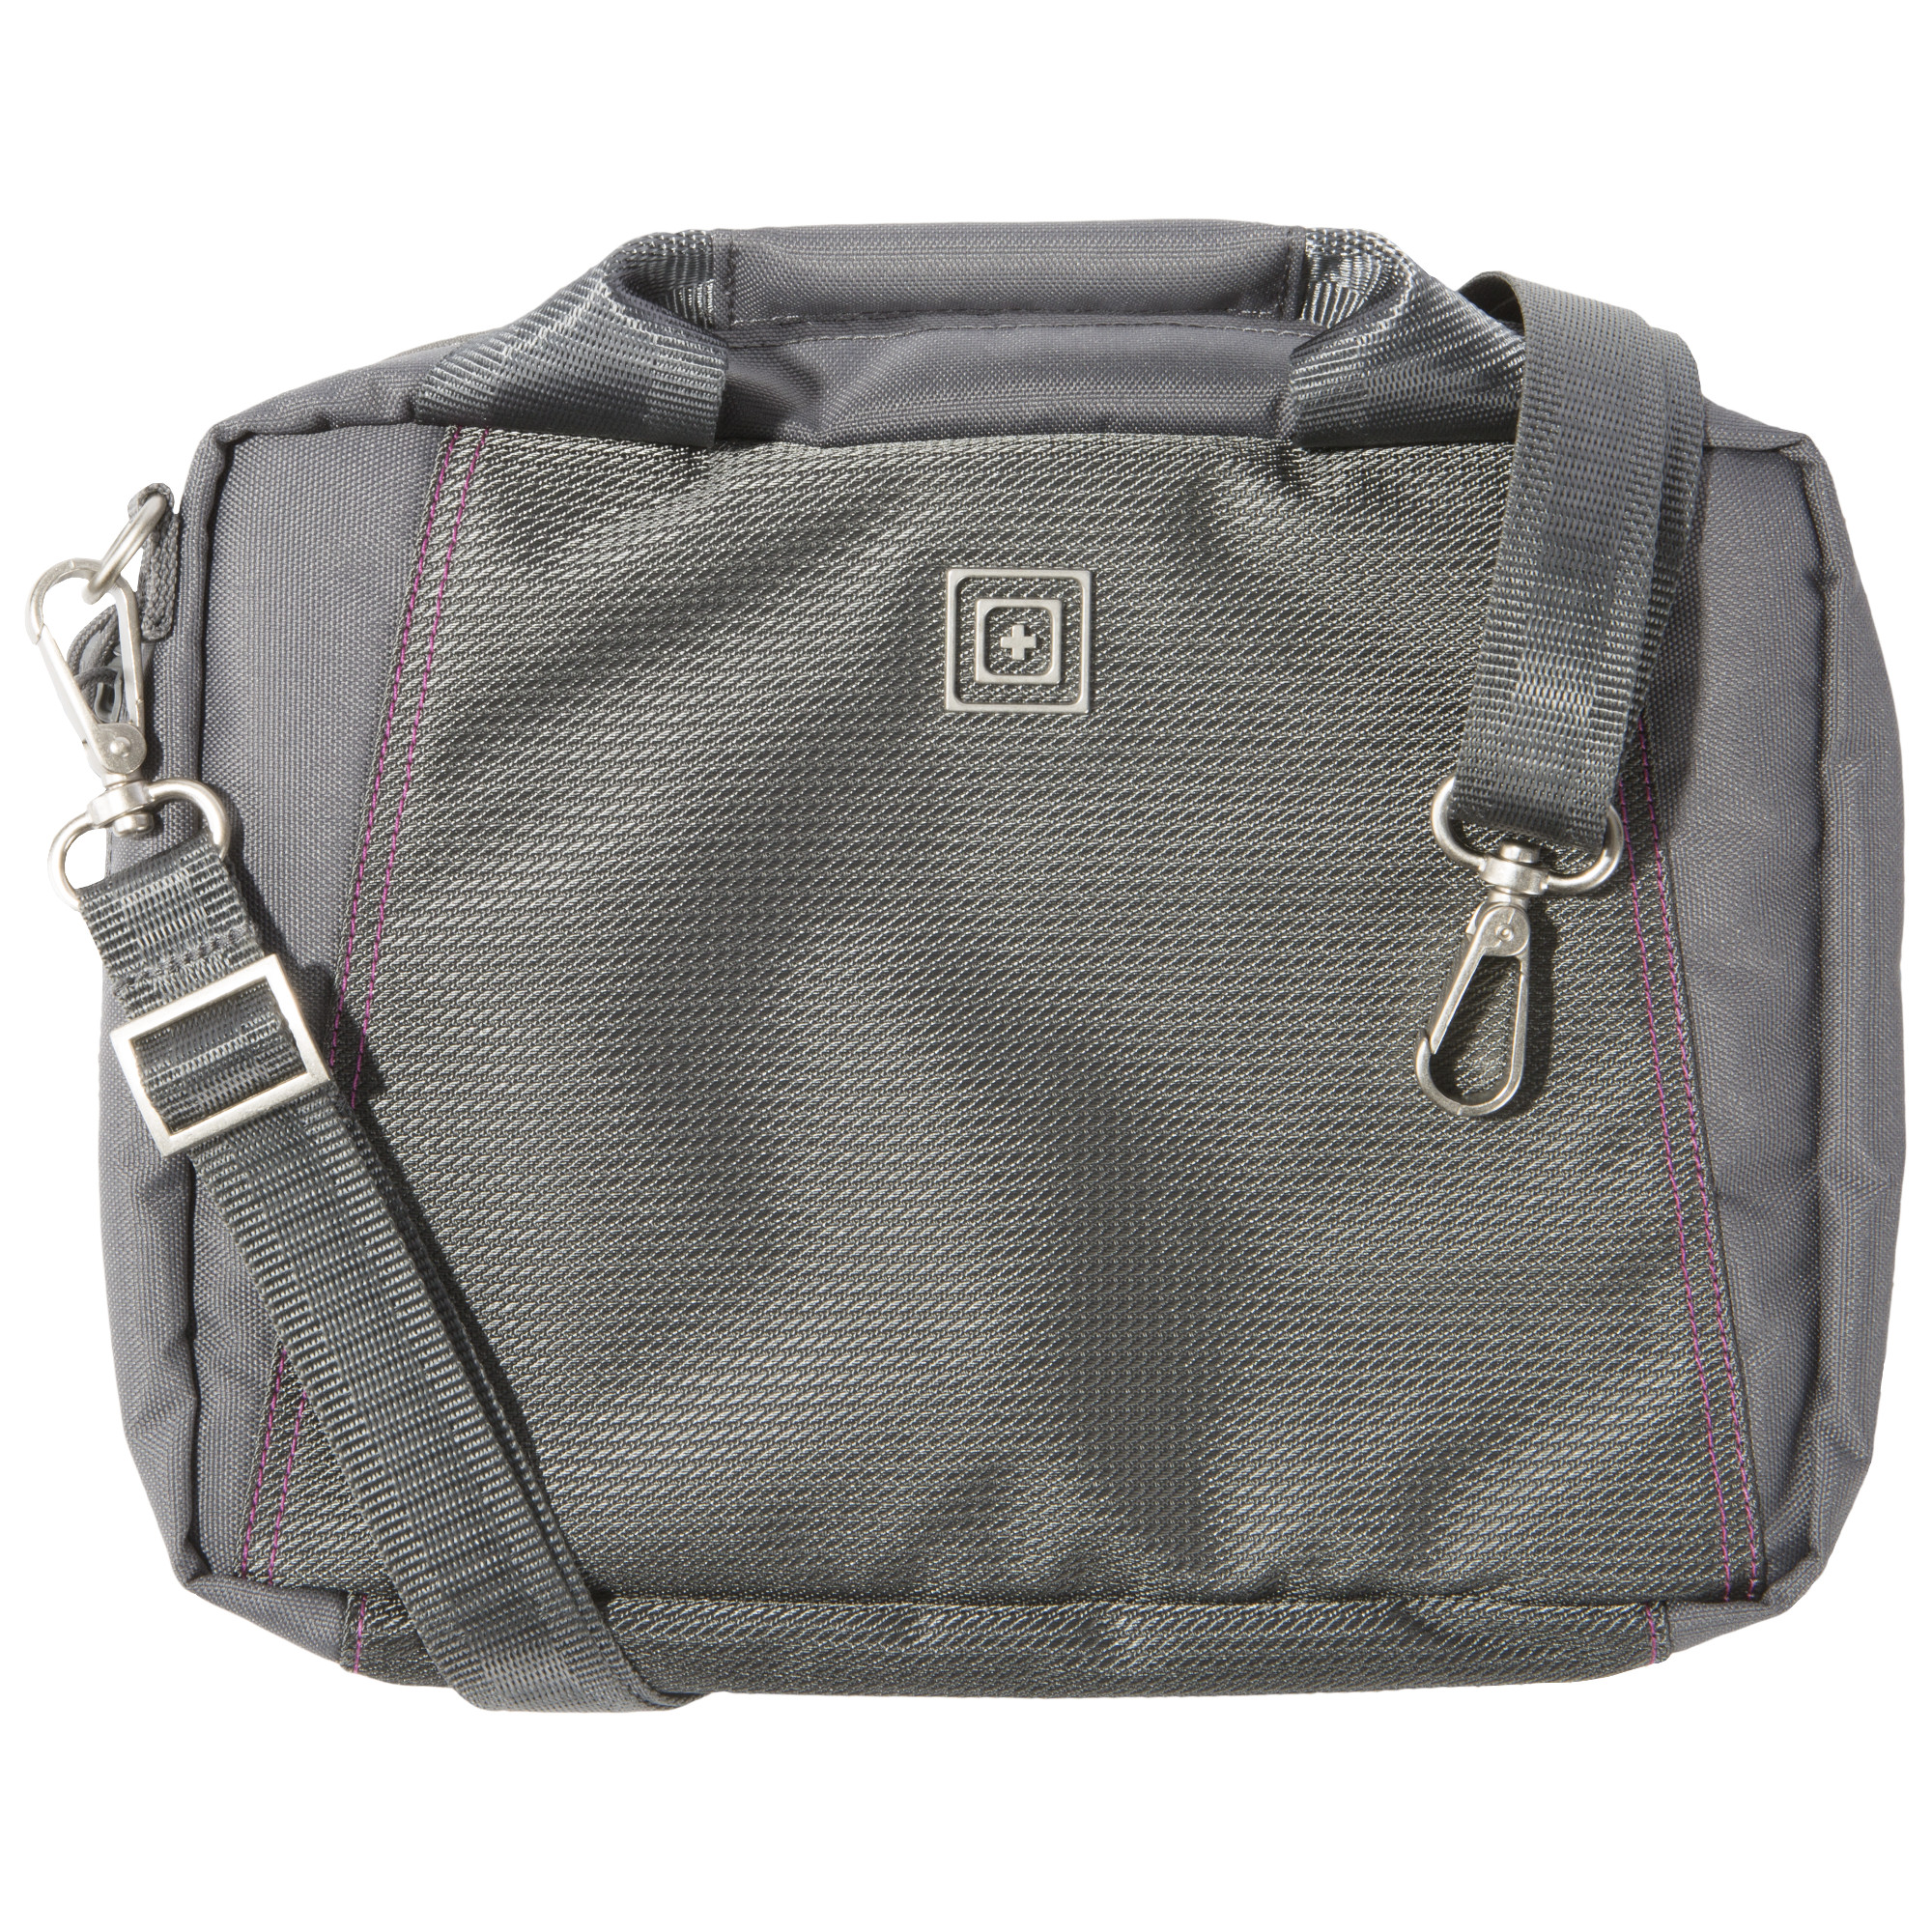 5.11 Tactical Women's Crossbody Range Purse (56309-092-1 SZ 888579034424 Accessories Bags) photo